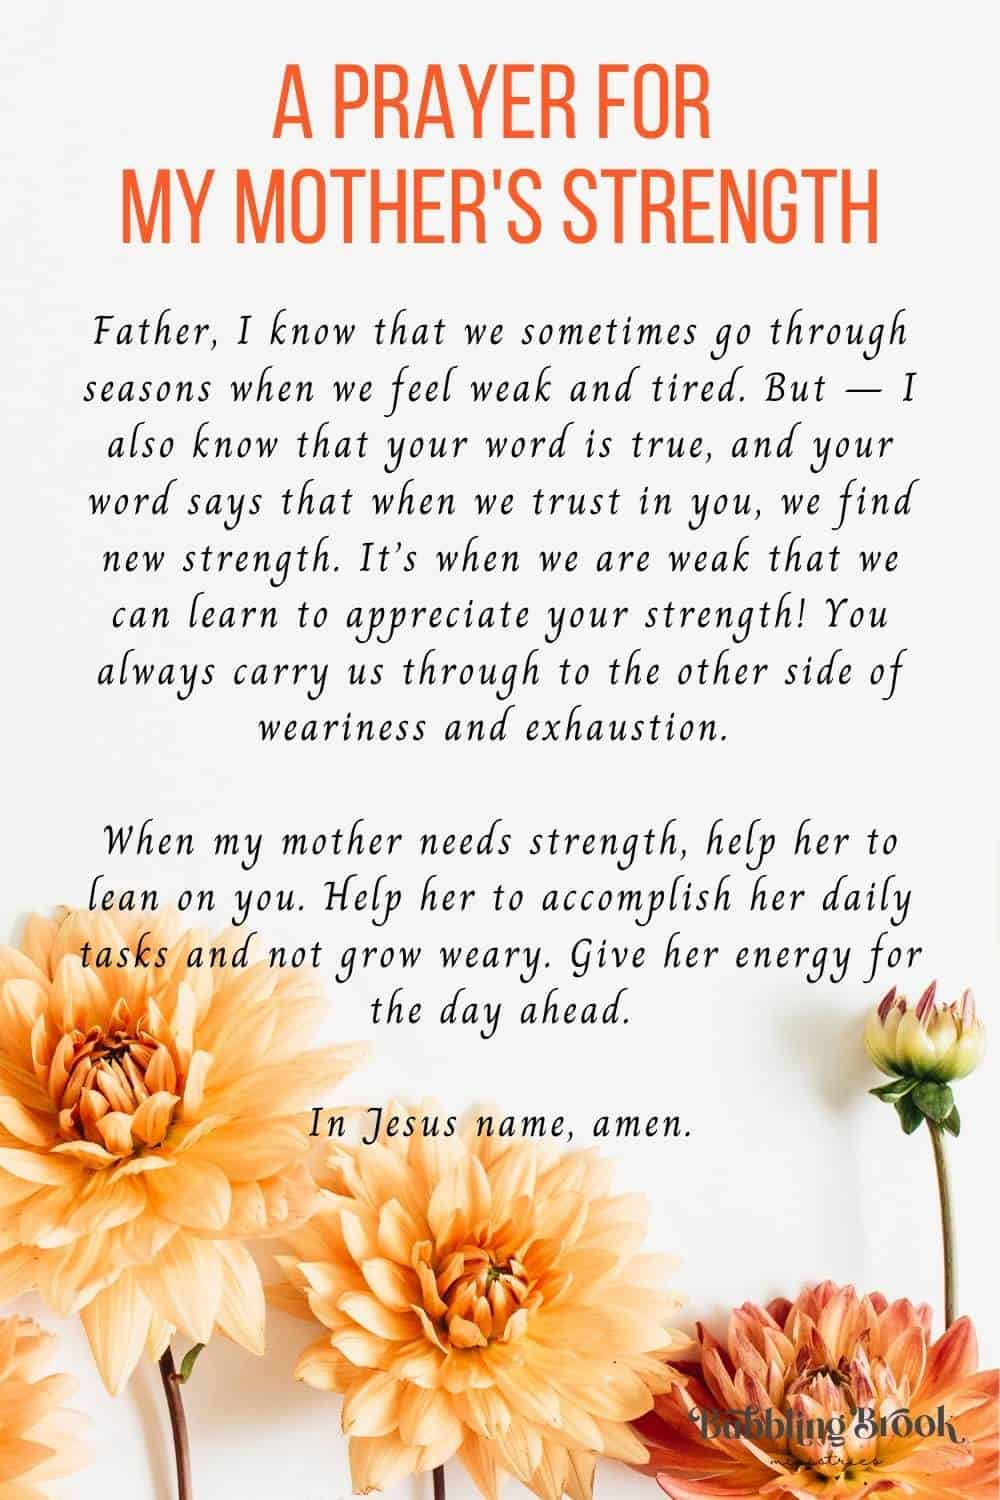 Prayers for Mothers Day - Prayer For My Mother's Strength